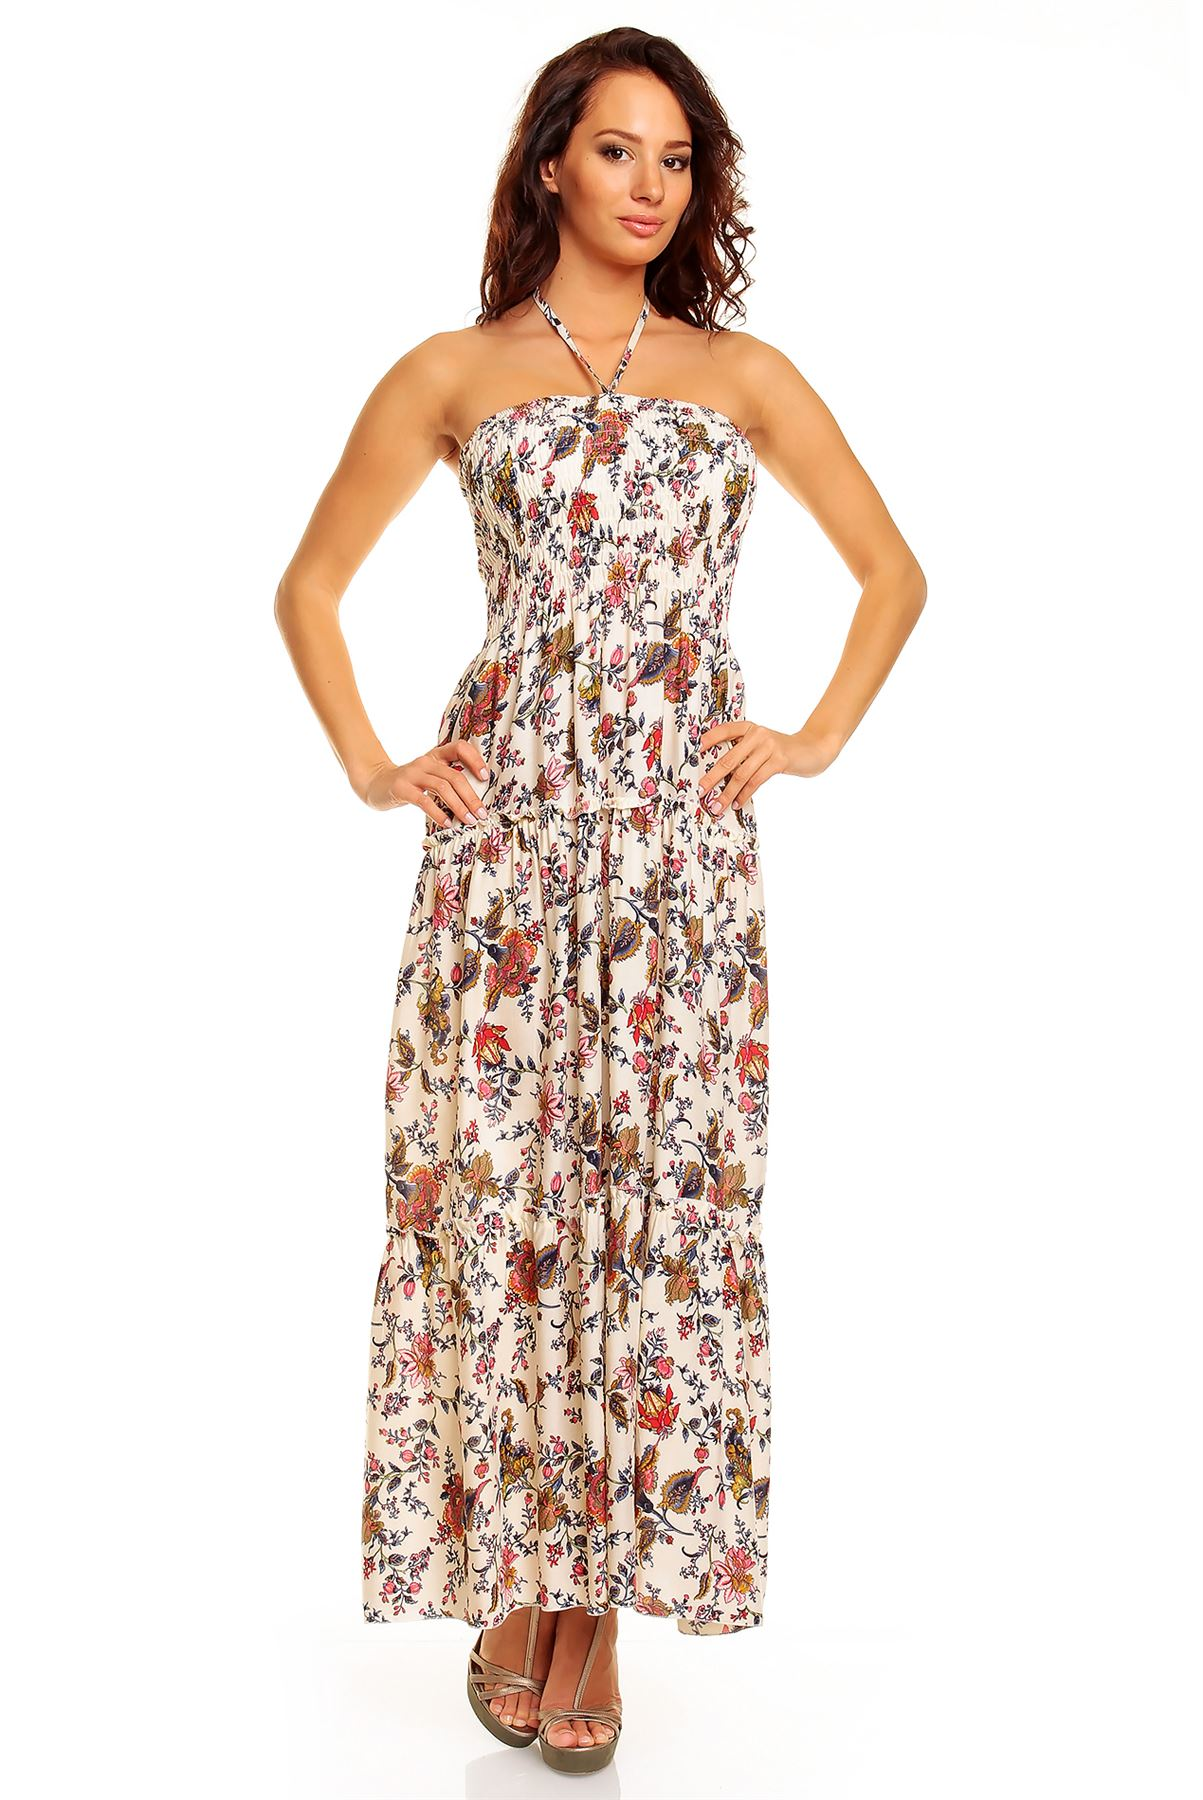 Genorvia ladies maxi dress summer floral strapless beach party dress This maxi dress is absolutely stunning, the material is lovely and soft making this very comfortable to wear.